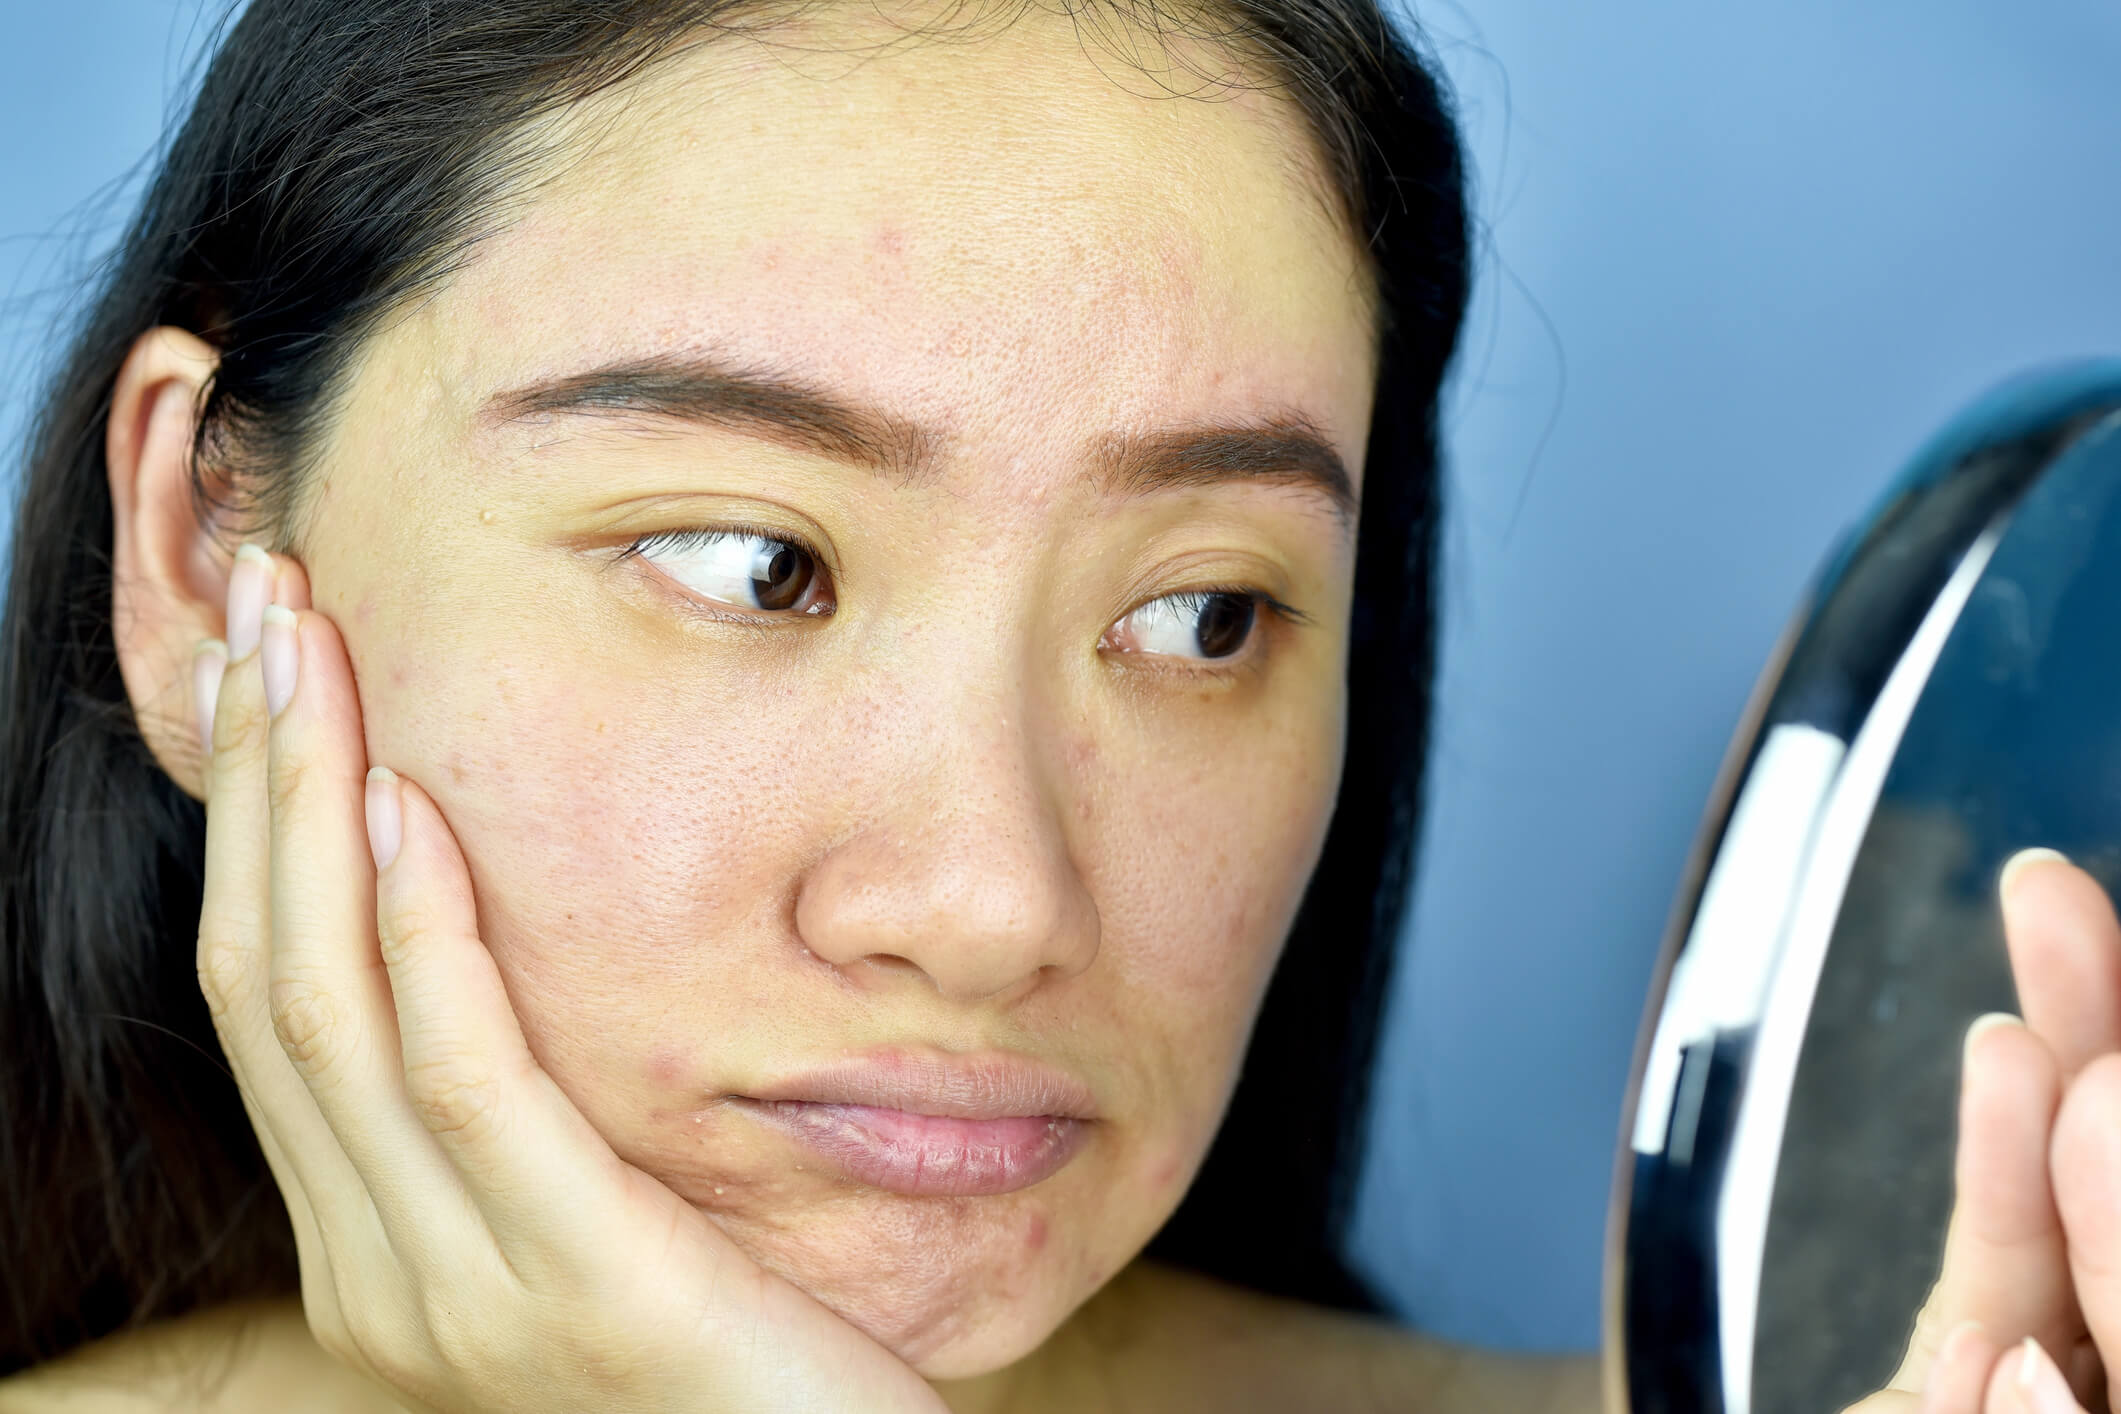 Clogged Pores – Why It Happens and What You Can Do About It